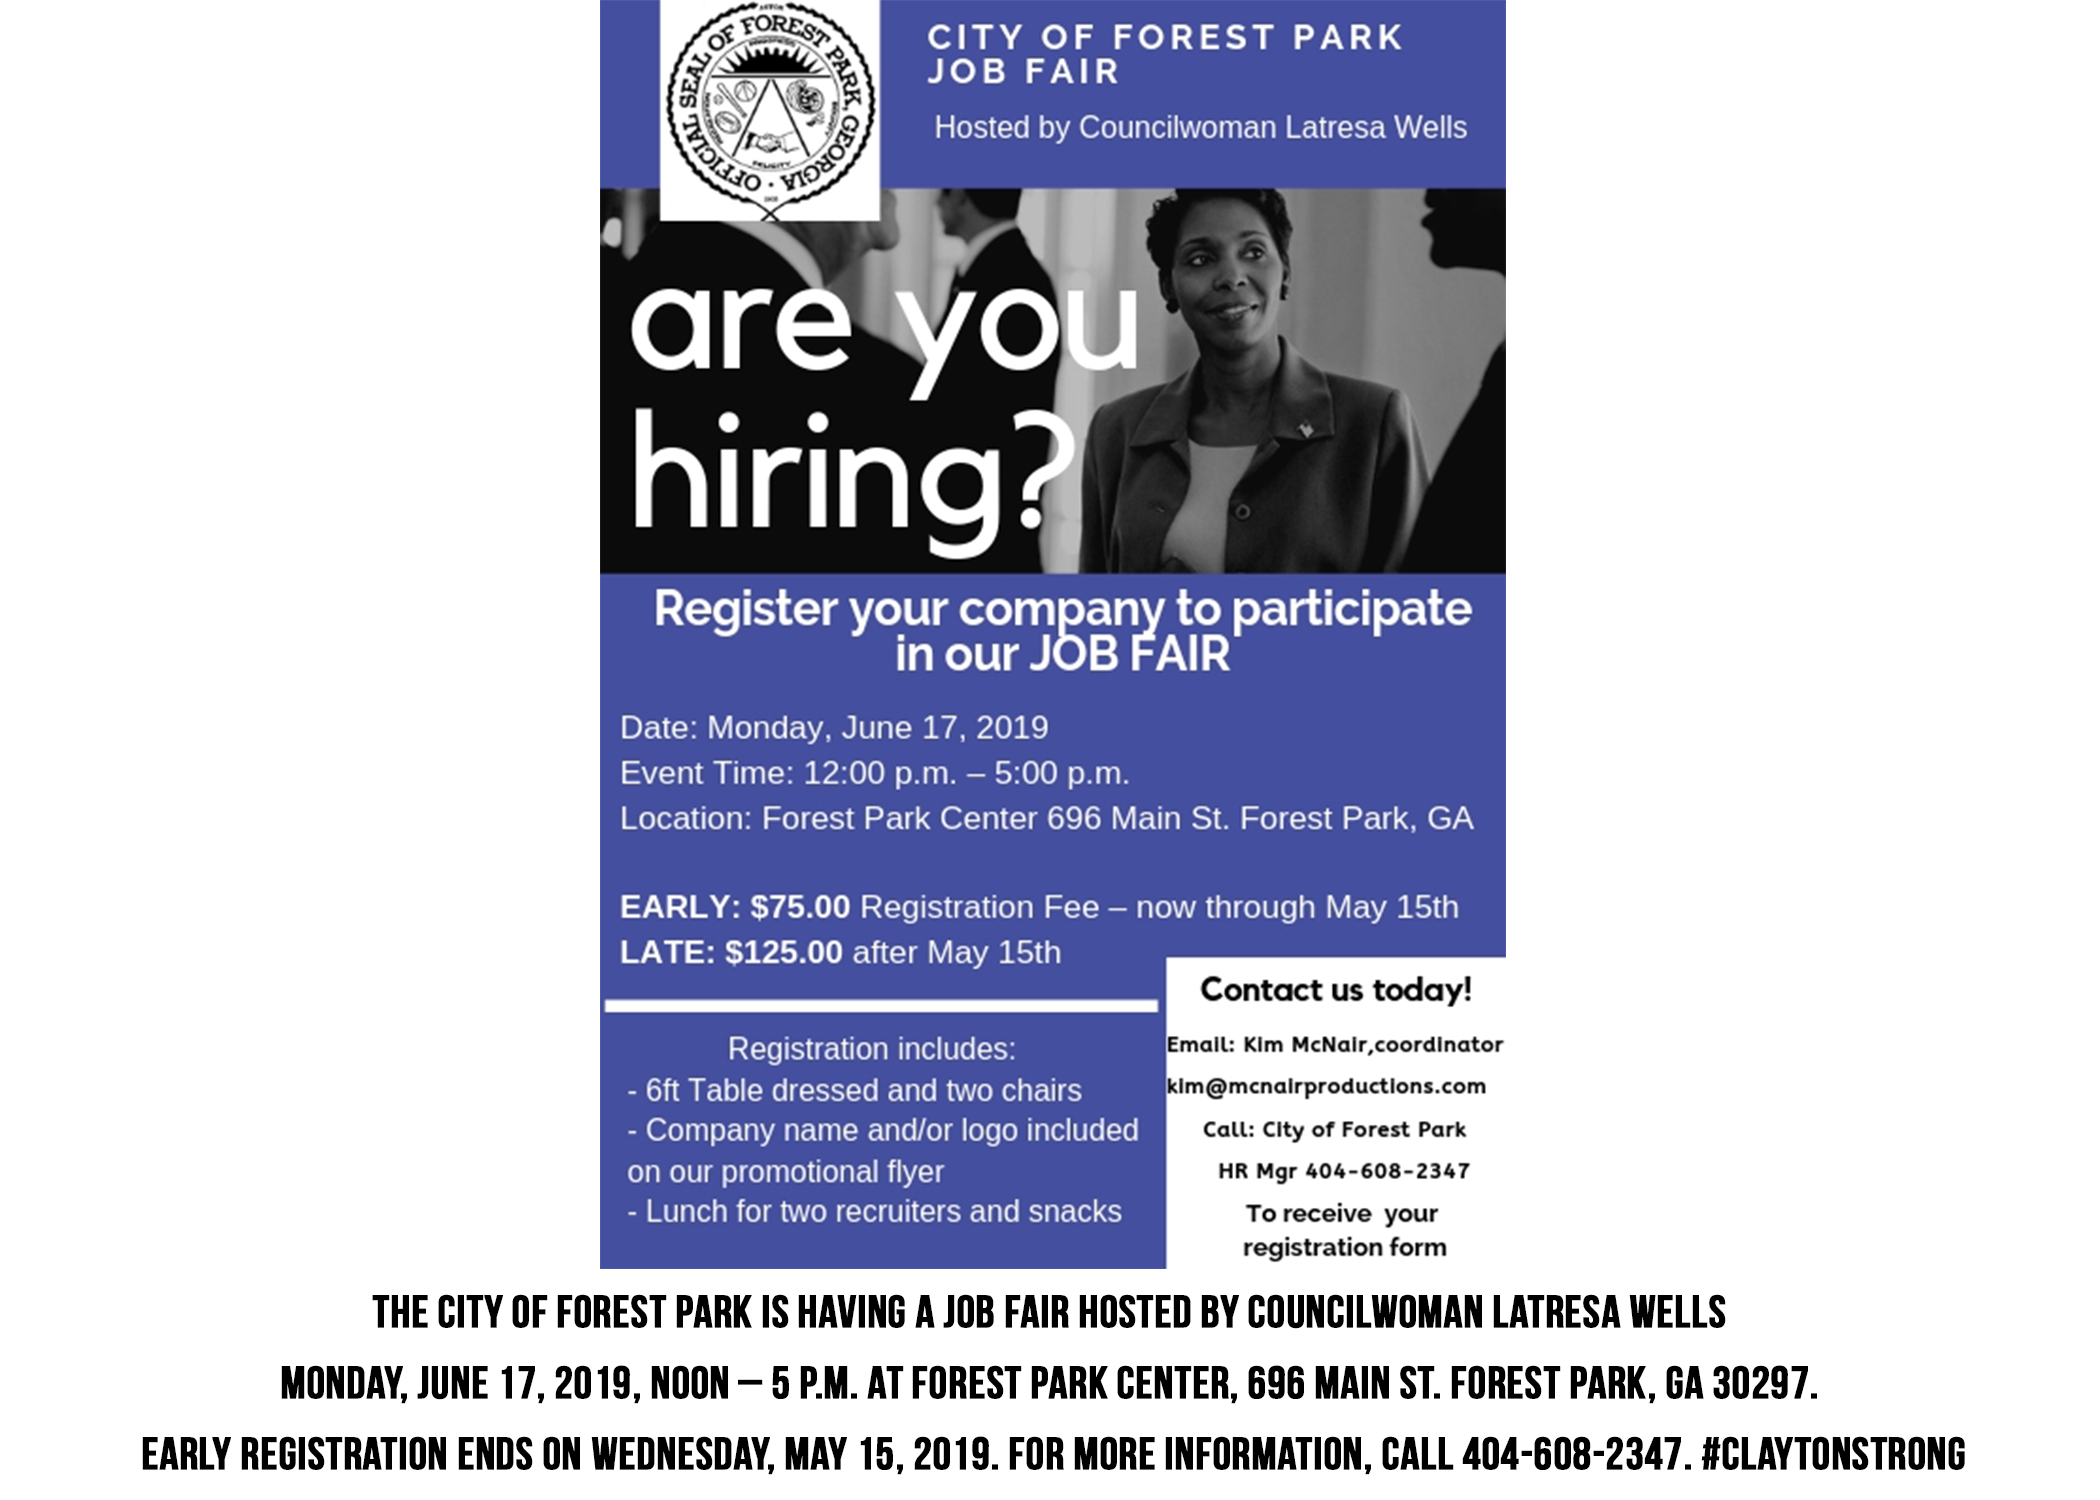 ForestParkJobFair